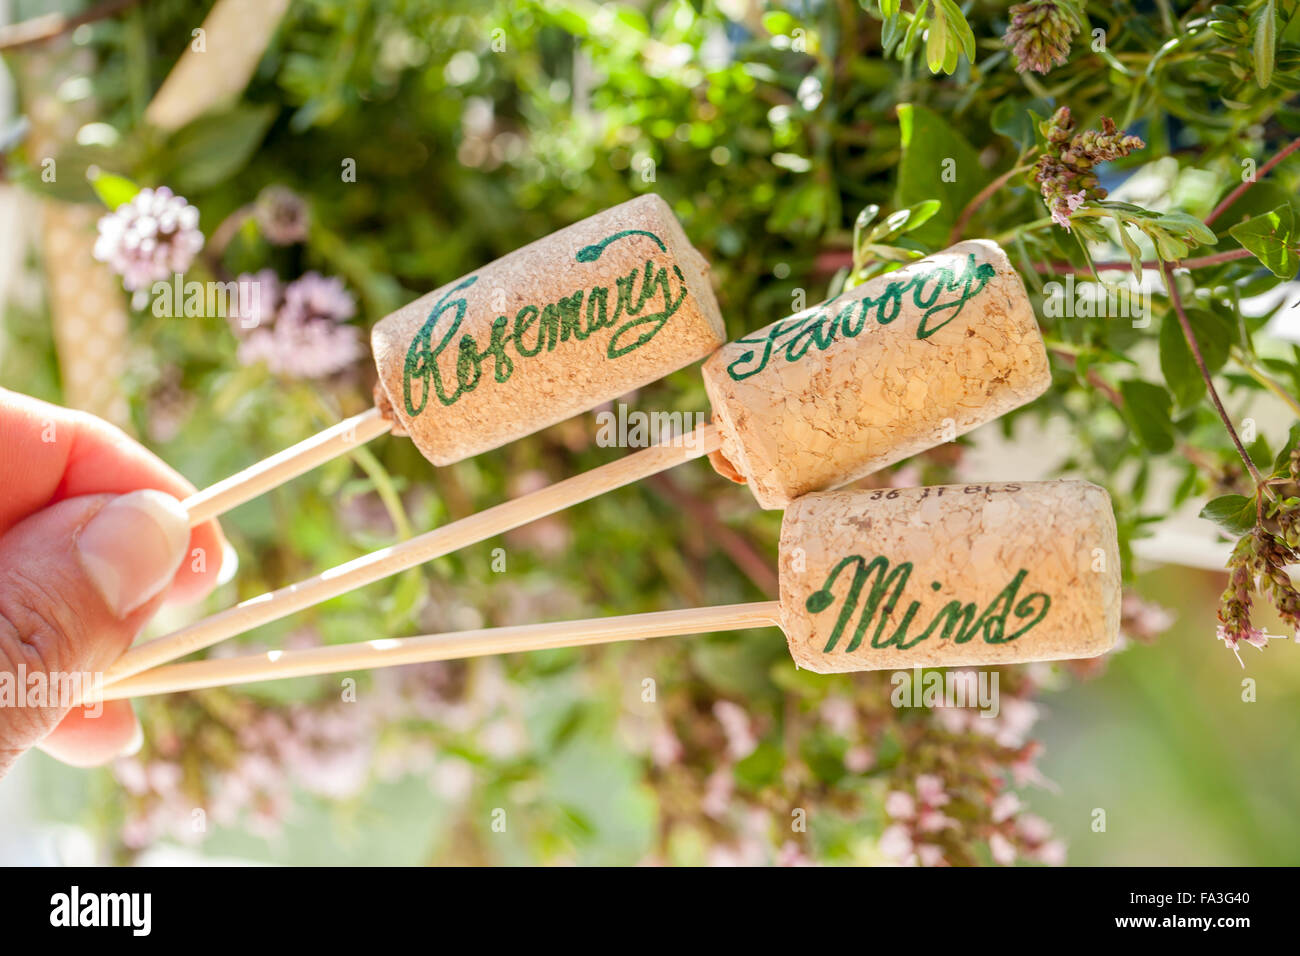 Ornaments with names on them - Method Paint The Cans White And Ornaments With String Write The Names Of Herbs On The Cork With A Pen